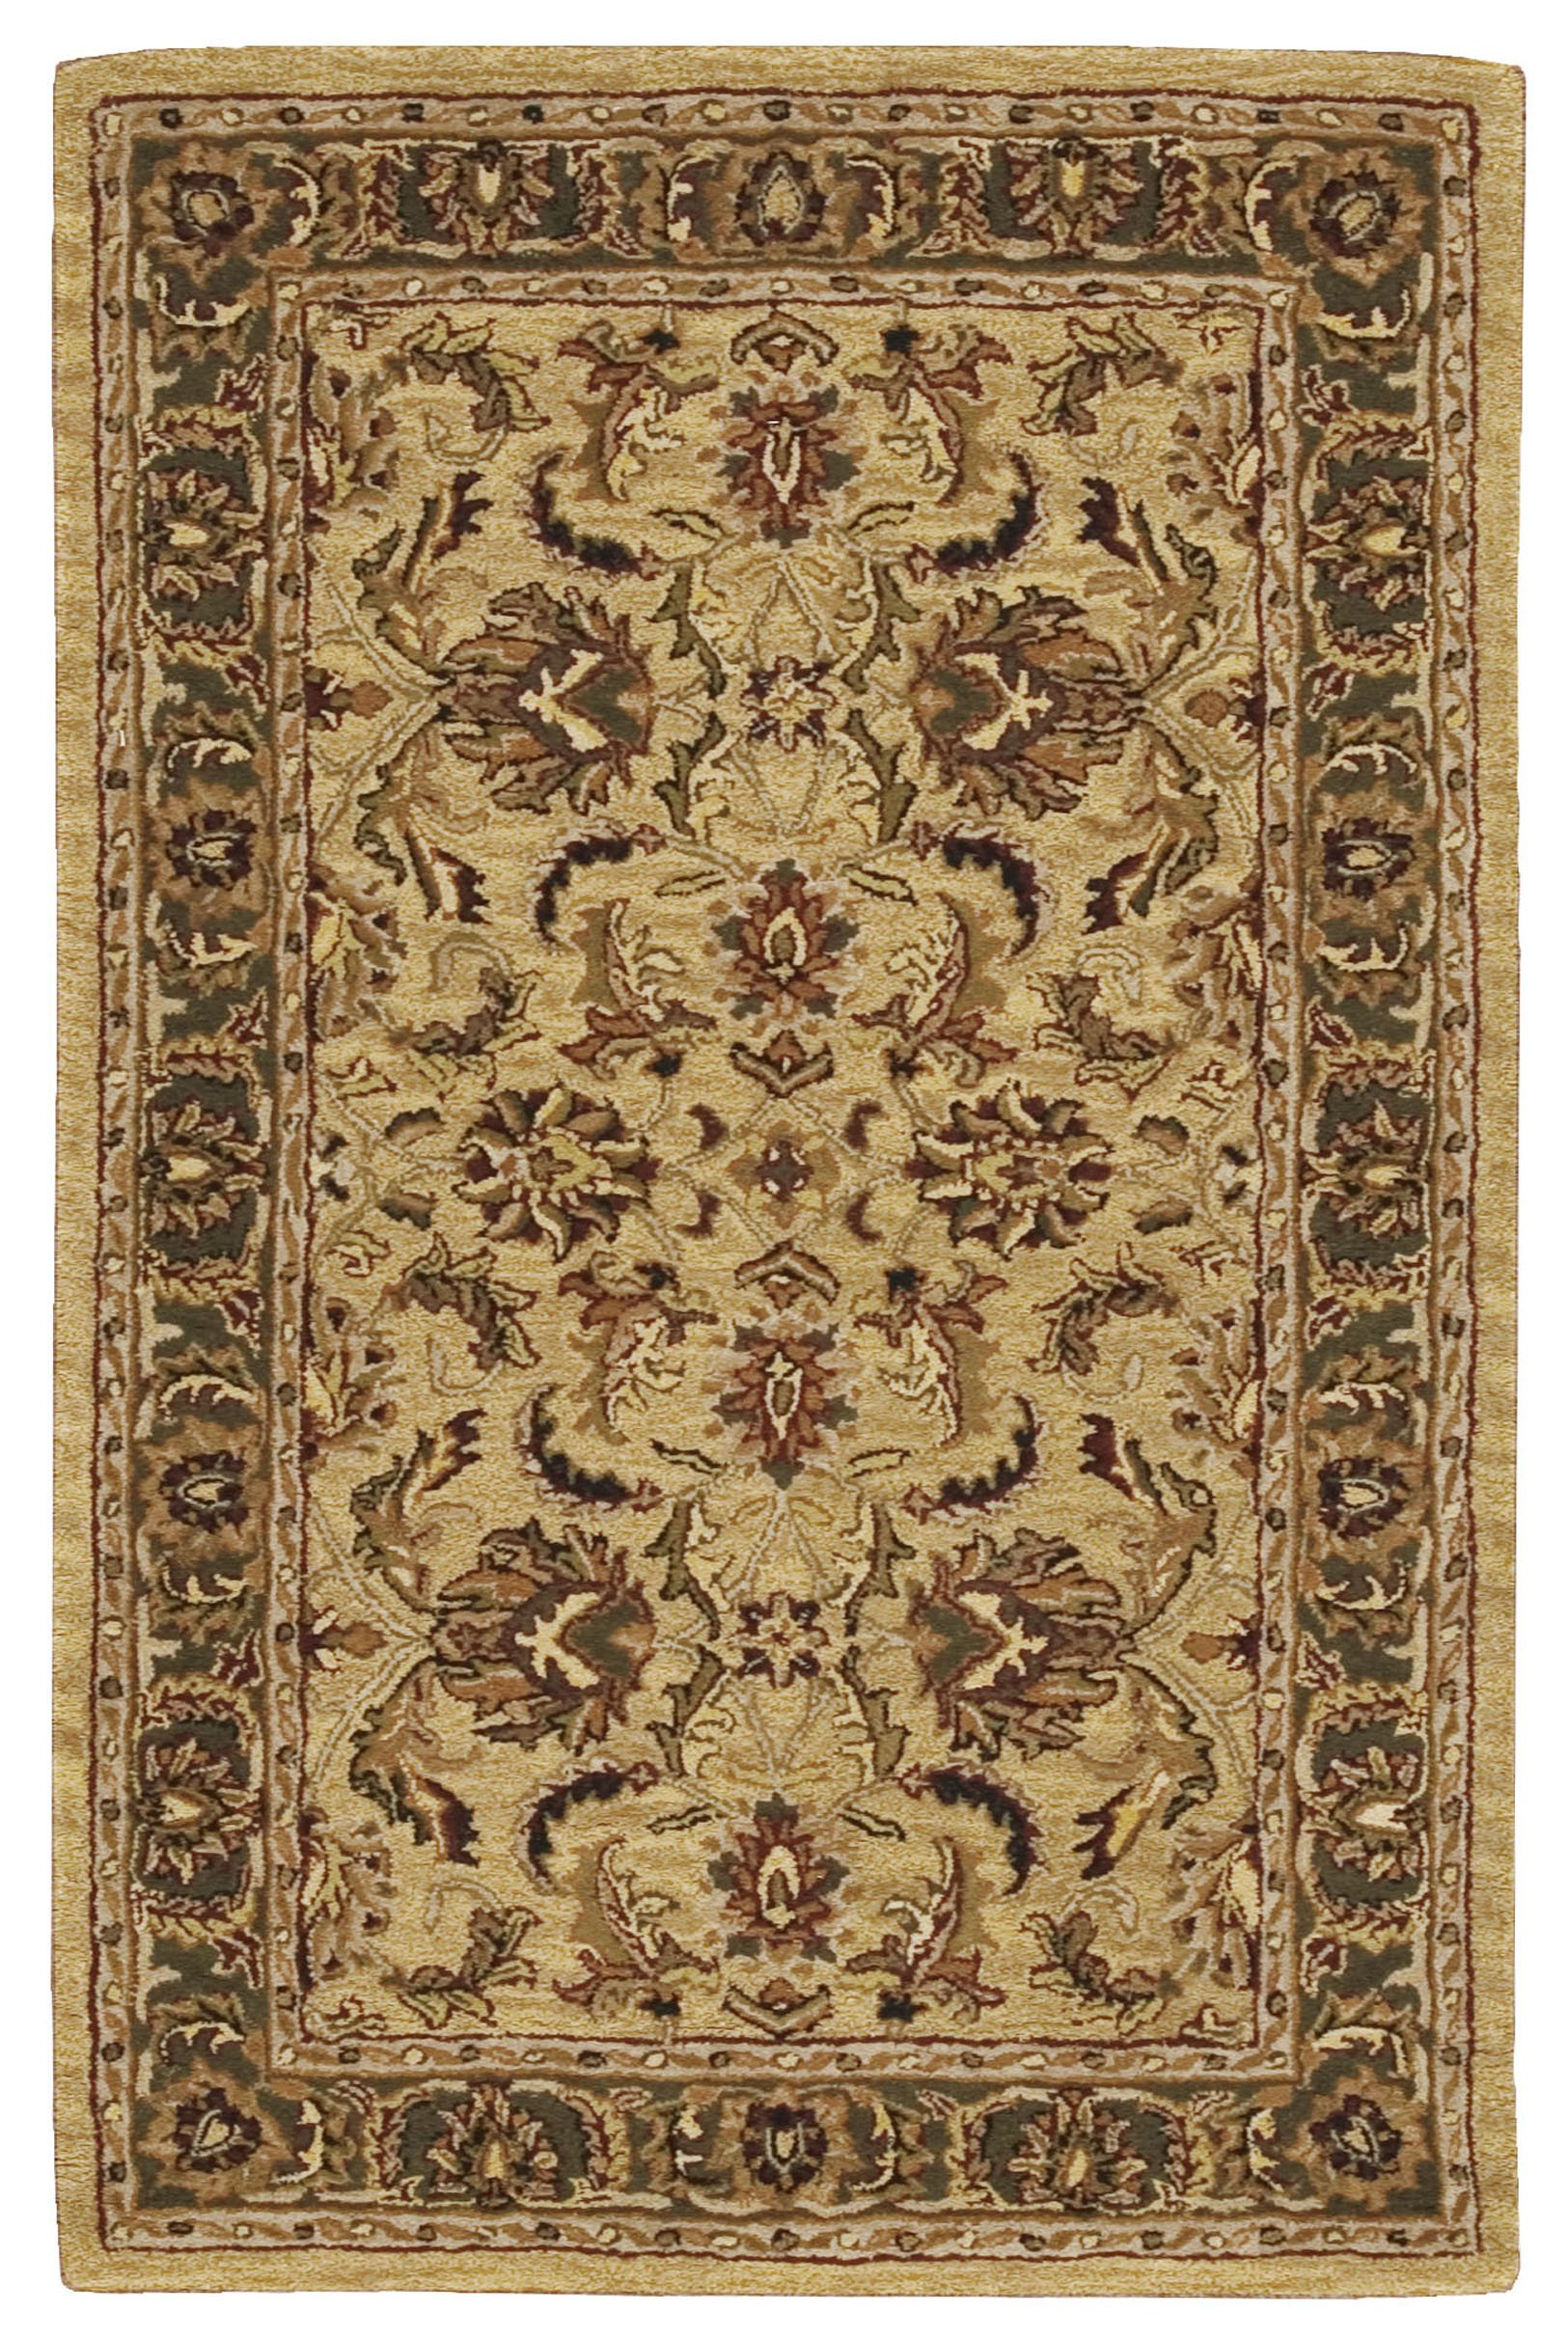 Nourison India House (IH17) Gold Rectangle Area Rug, 2-Feet by 3-Feet (2' x 3')